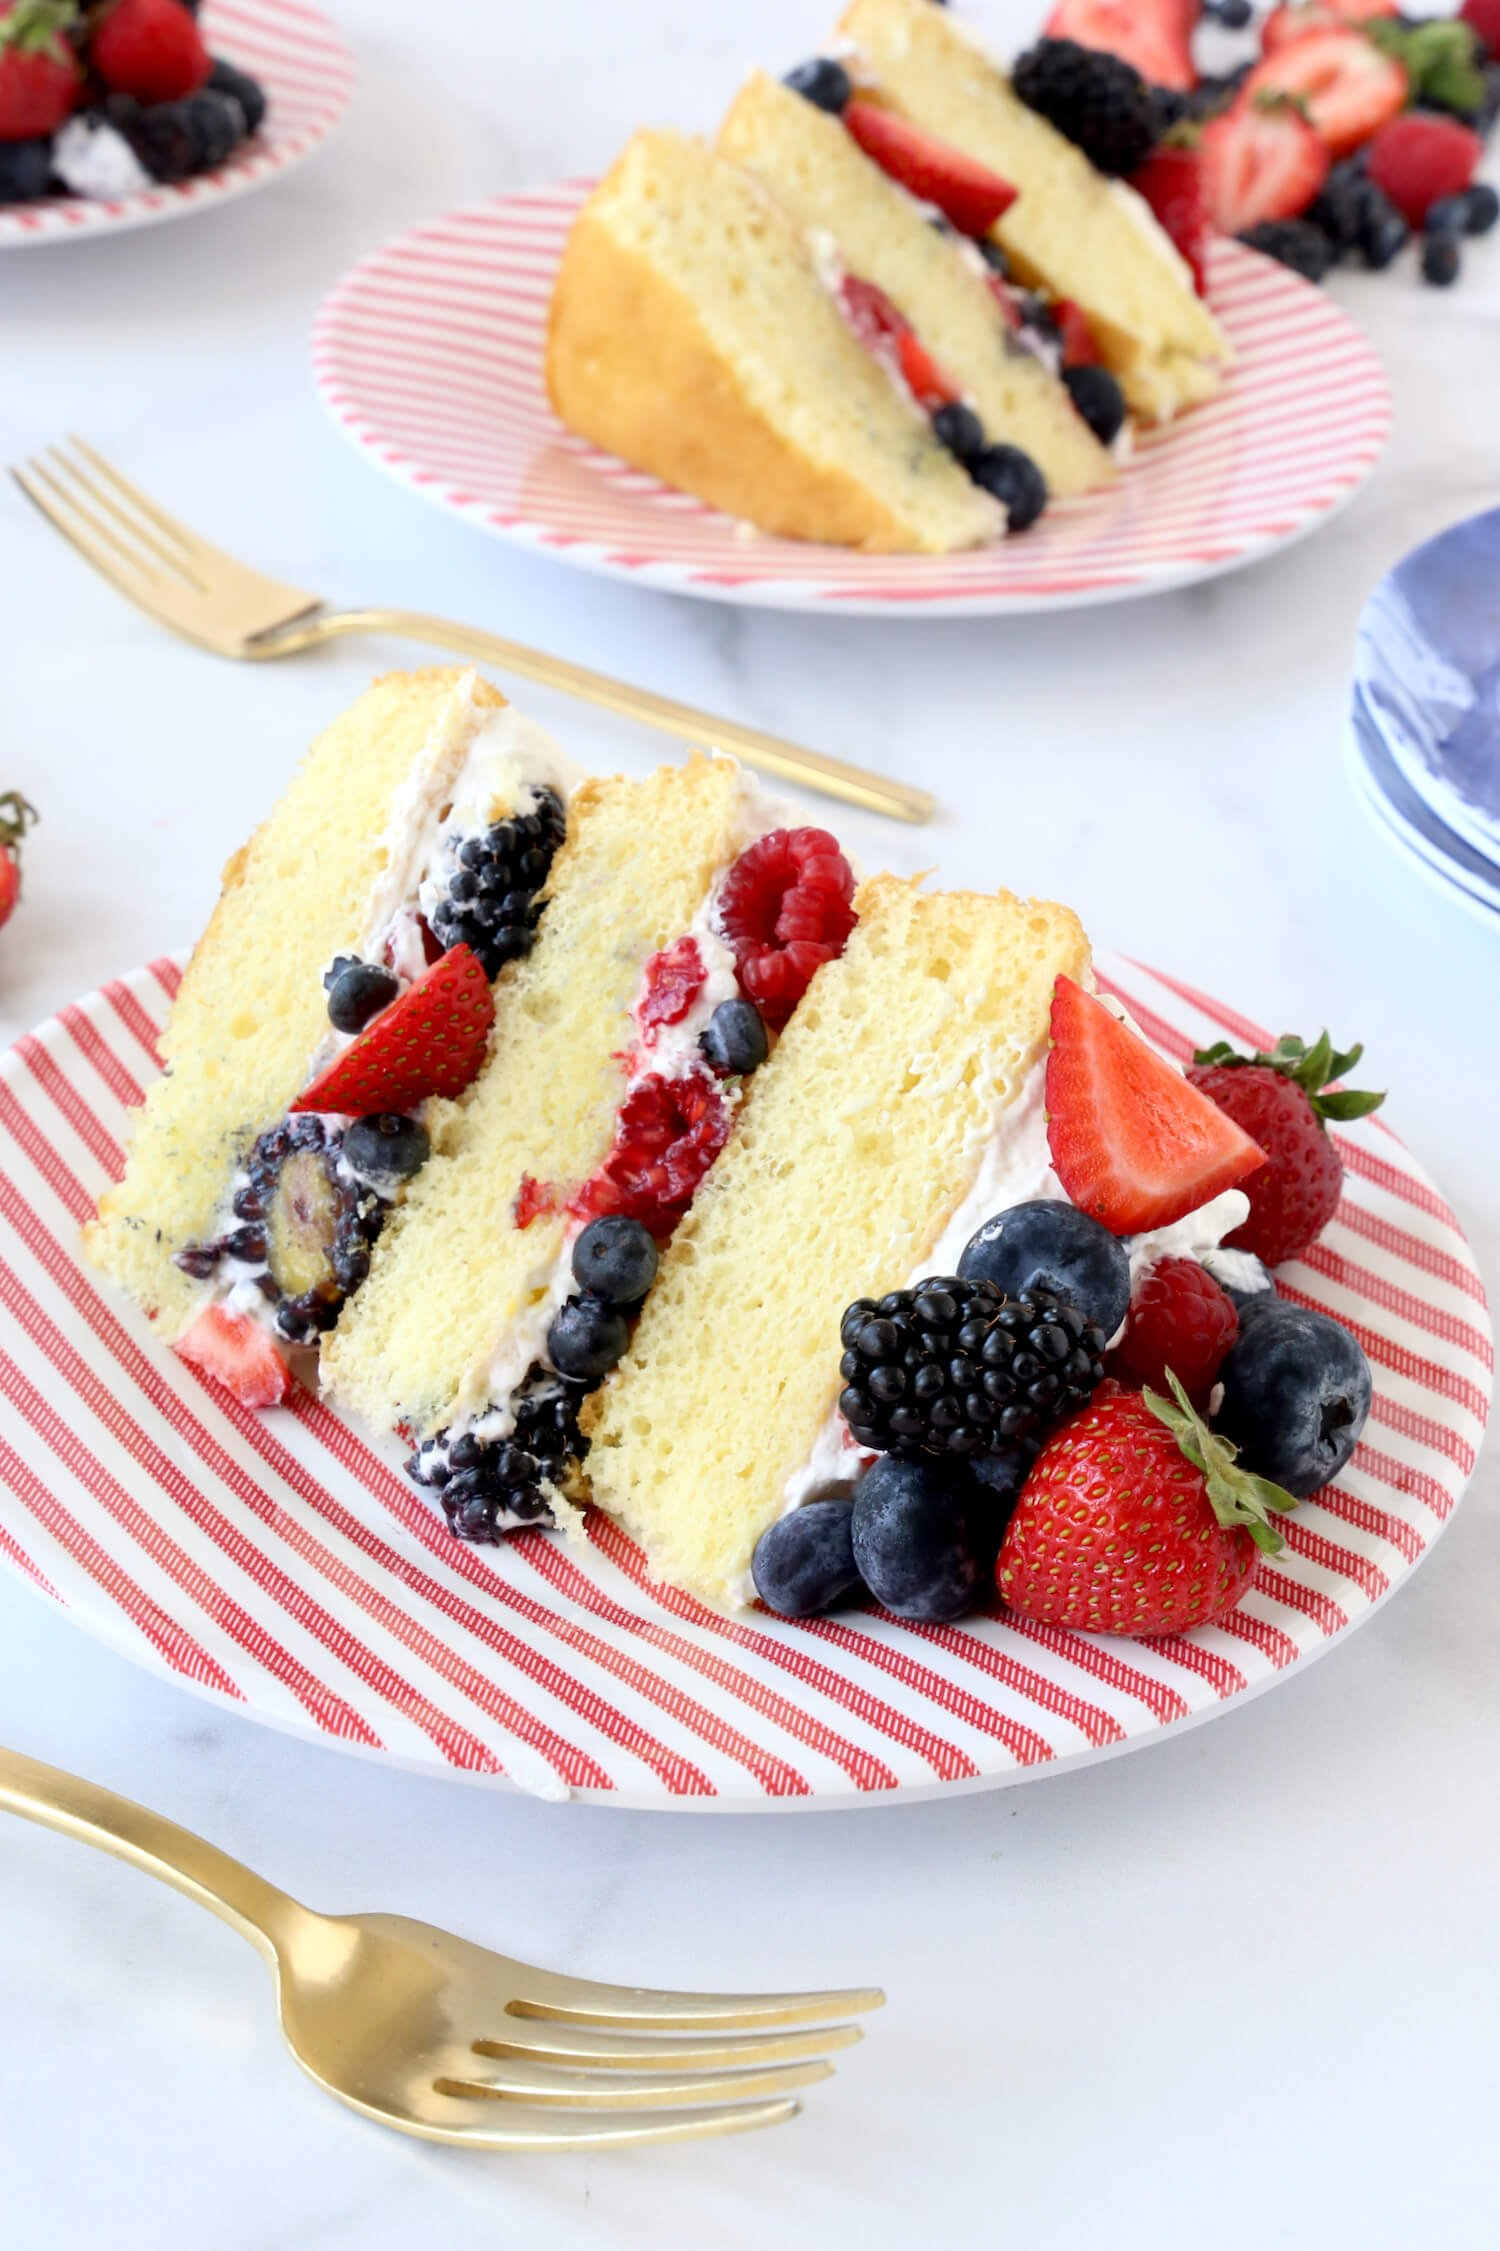 A slice of cake on a red and white stripe plate.